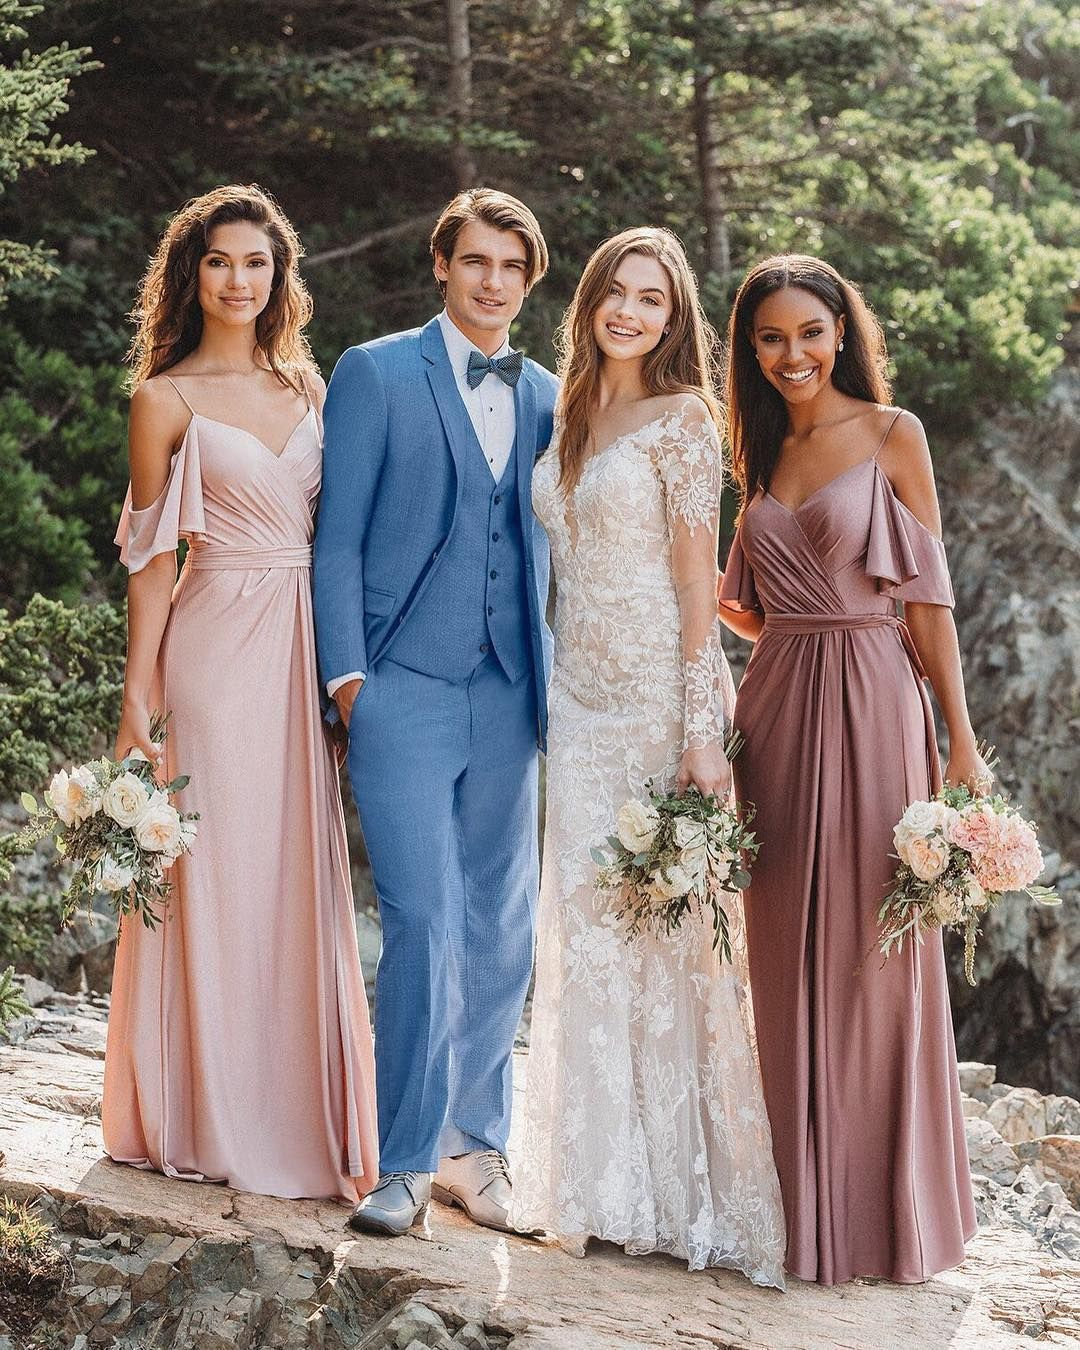 Allure Bridals On Instagram Mix And Match Your Bridesmaids Gowns We Styled The Allure Allure Bridesmaid Dresses Wedding Dress Couture Elegant Wedding Dress